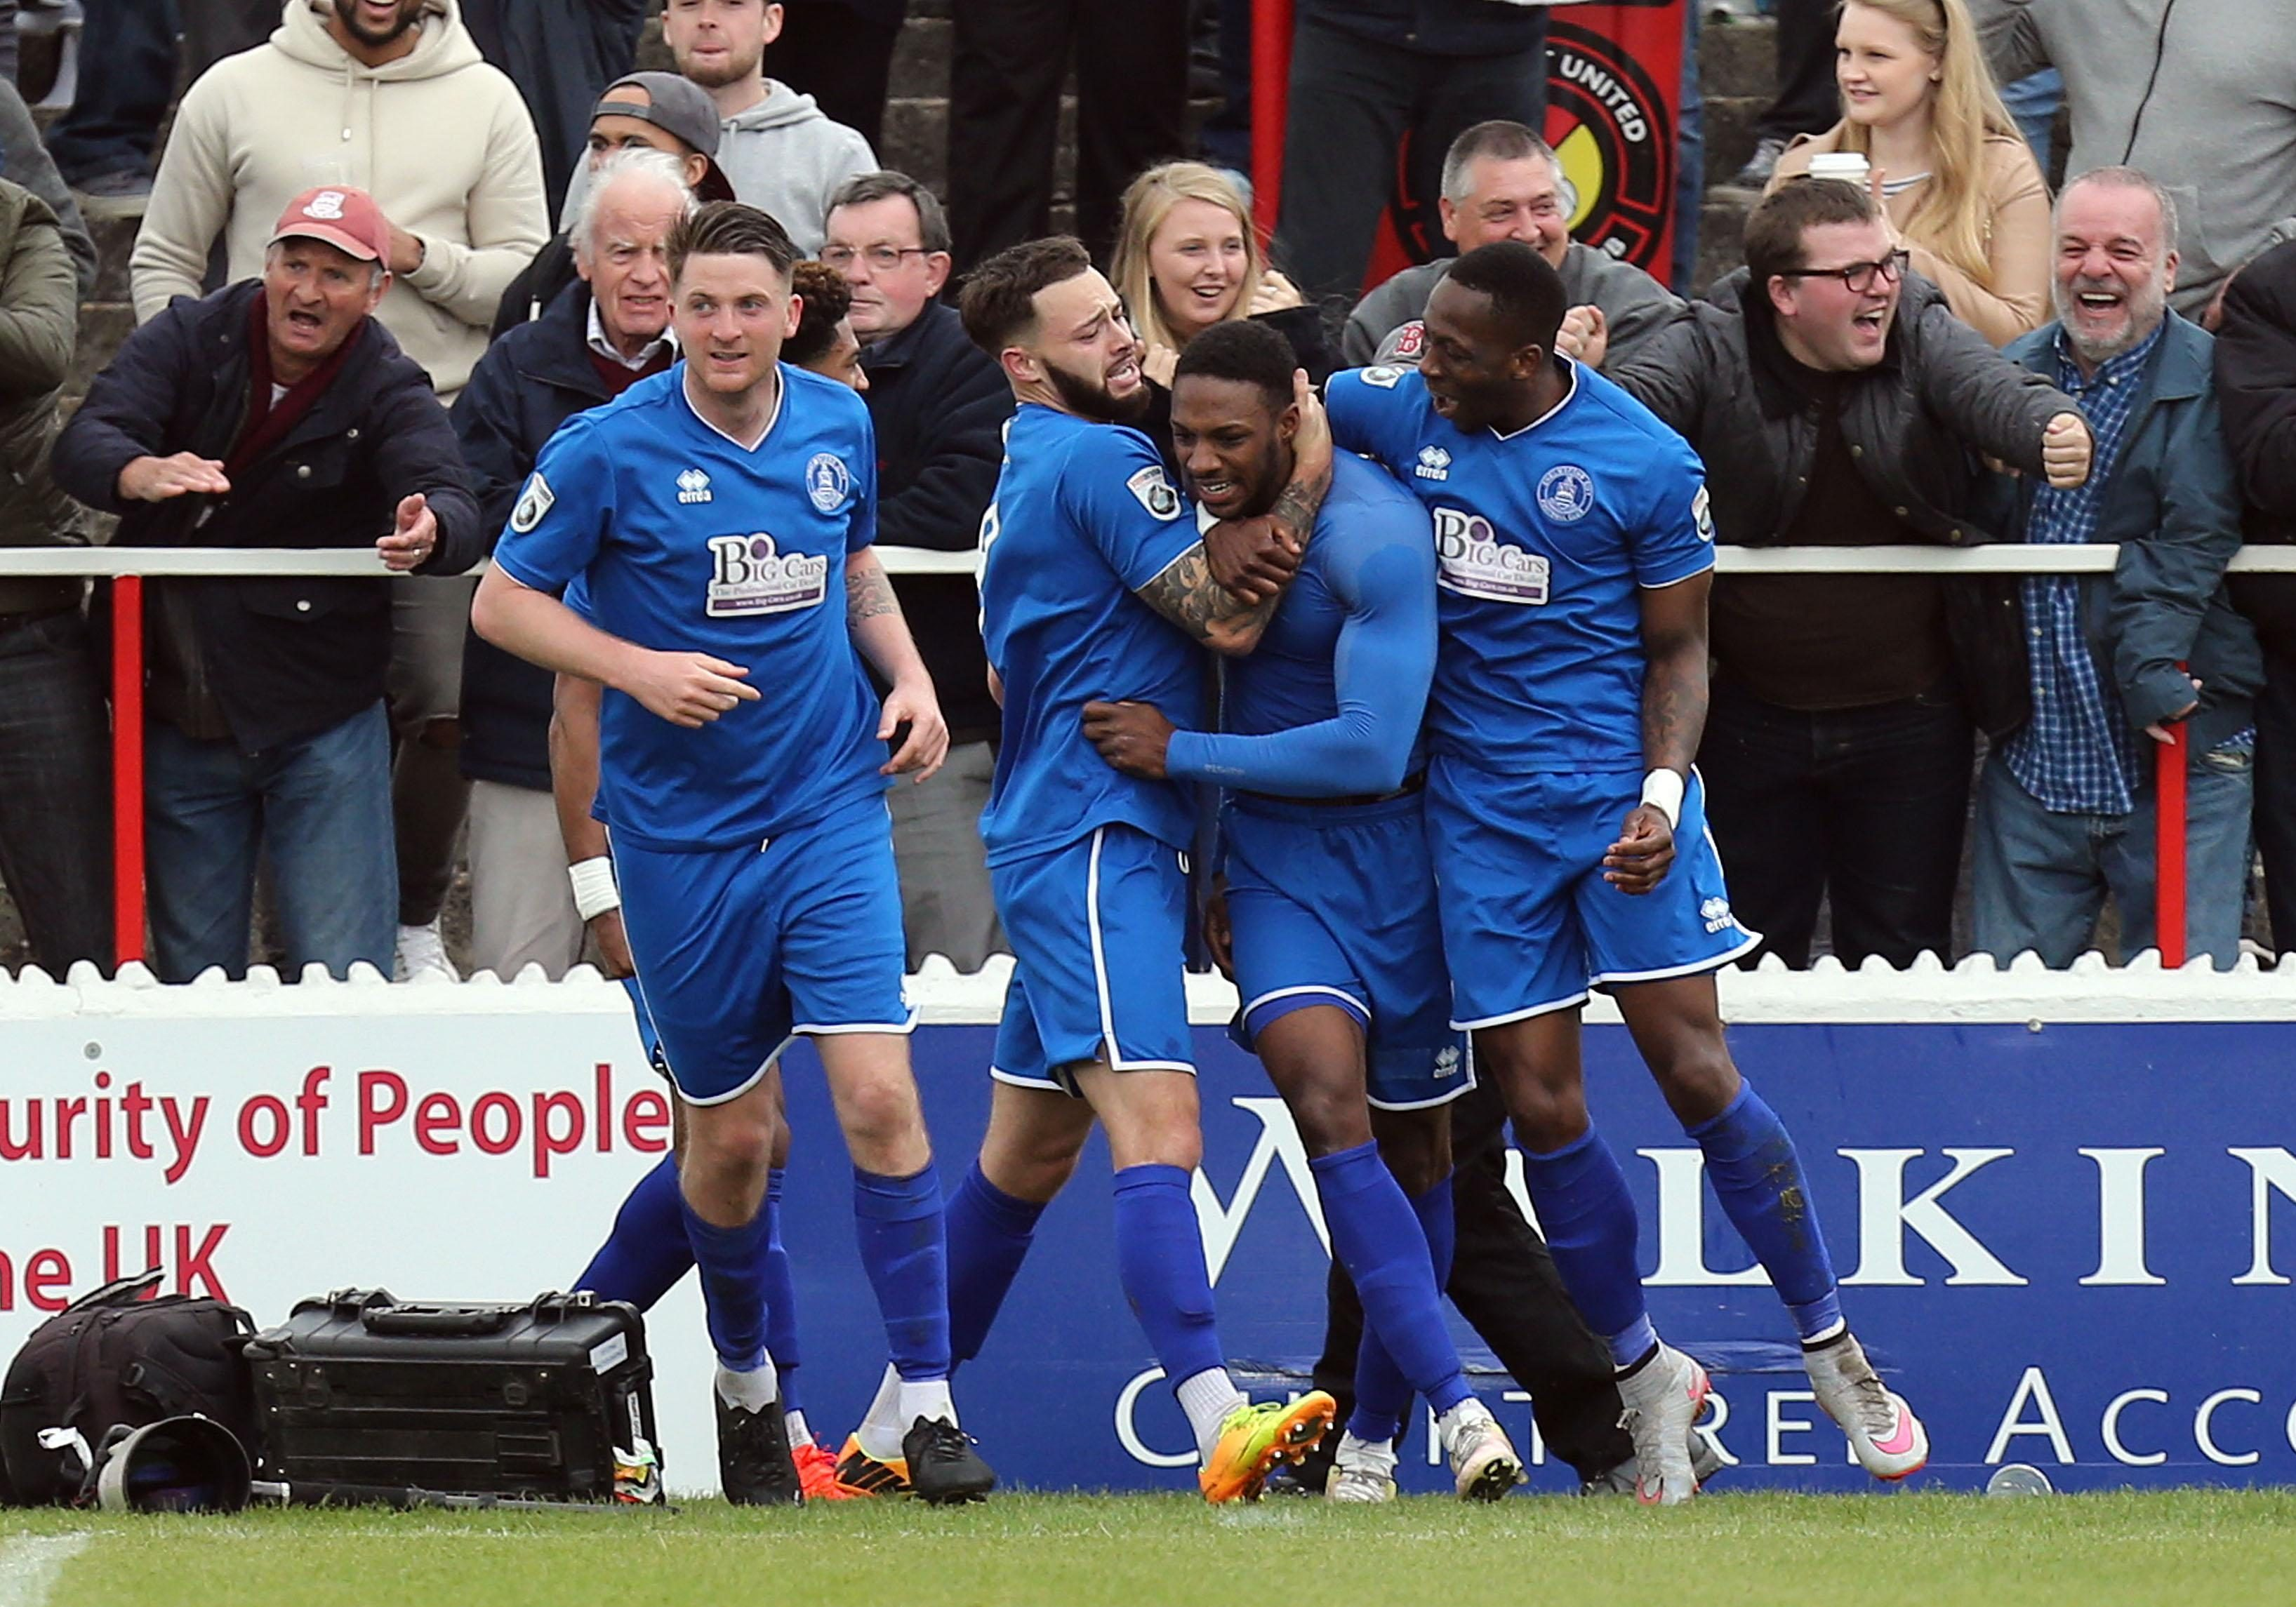 Bagasan Graham, centre, netted for the home side as they beat Wealdstone 3-0